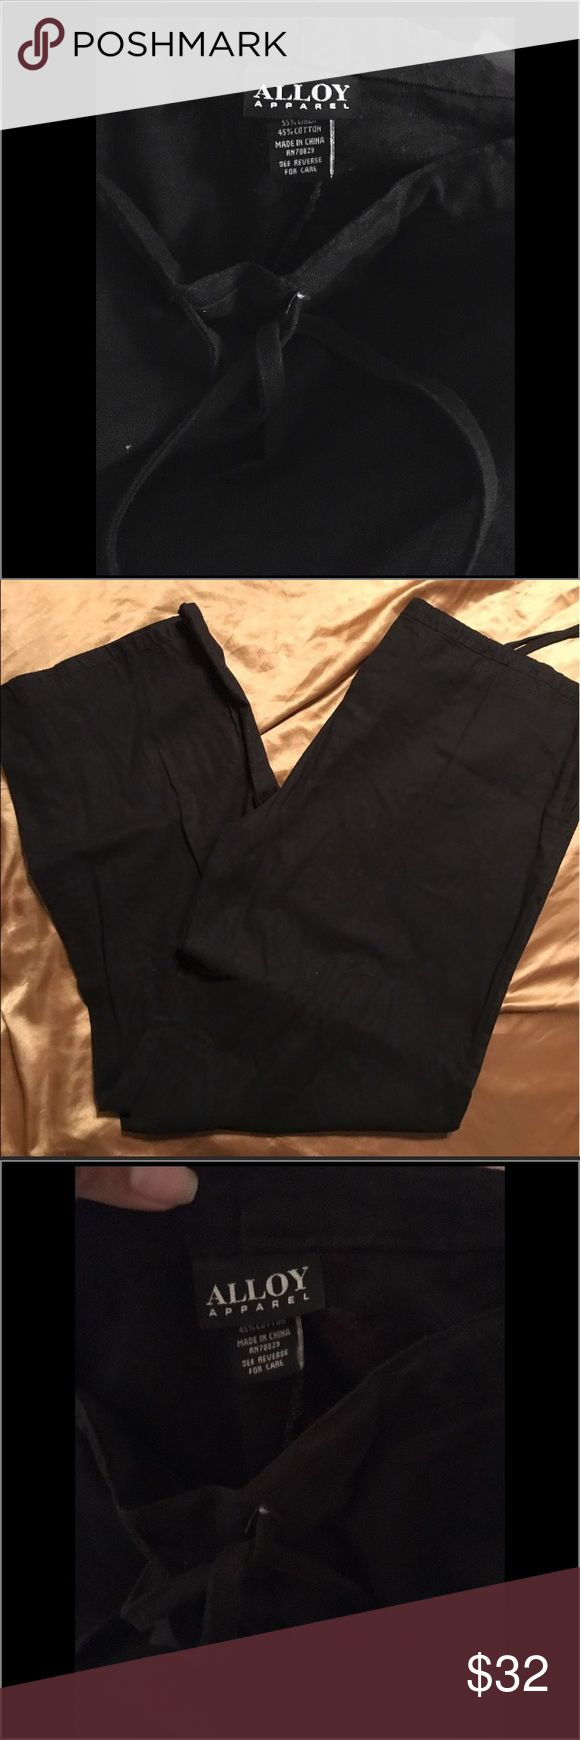 "NWOT💕black pants linen pants big and tall  pants New without tag 💕 I bought these off a Posher and I failed to notice that the inseam was very long. I do not require a 36"" inseam, I am only 5'6"". Anyways these are bomb 👌 gorgeous pants 😍. I do not want to cut them so I rather sell them. These pants were listed as XXX but they are actually 3XT‼️ these pants are super comfortable and fresh material 55% linen & 45% Cotton. Great steal!🌟 awesome name brand. Work pants black trousers Alloy…"